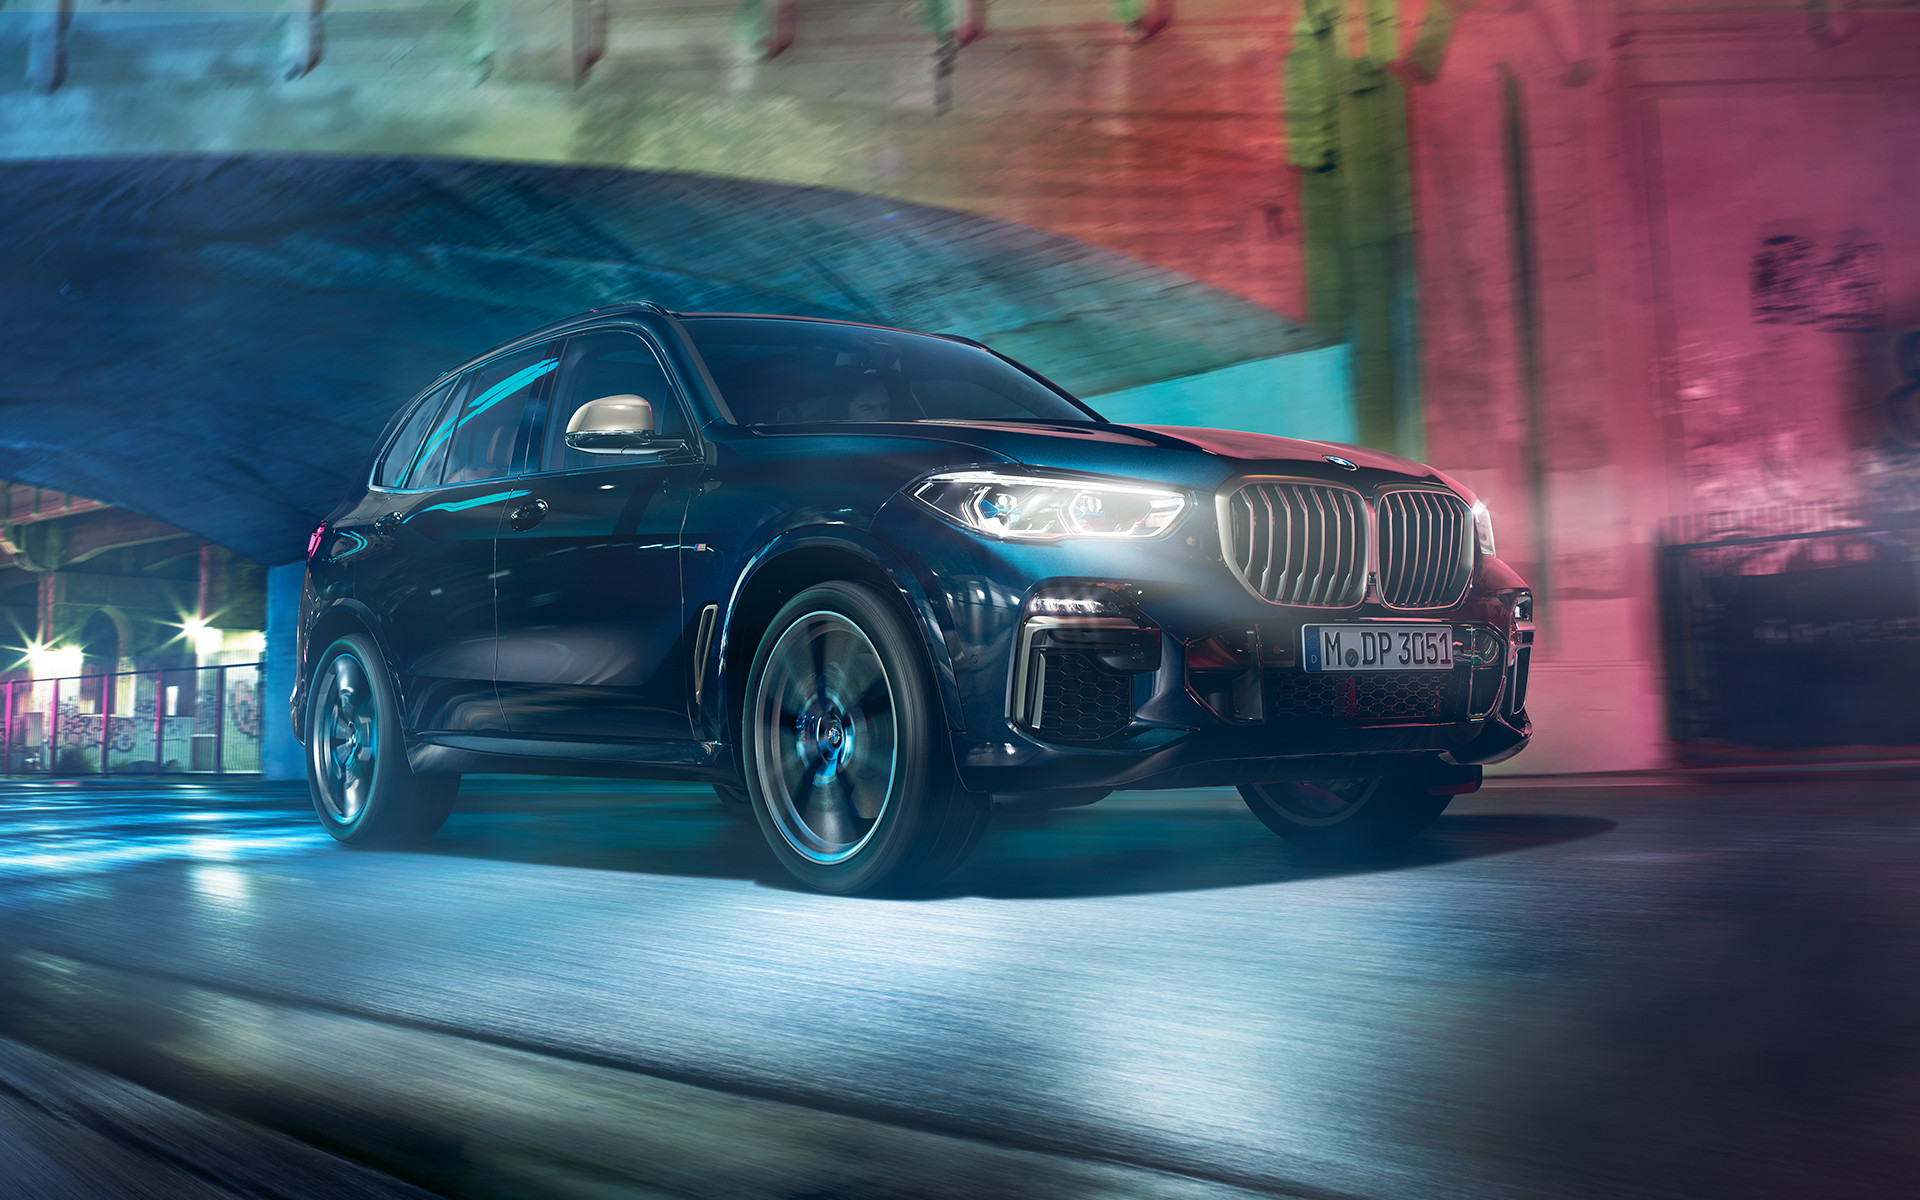 Res: 1920x1200, BMW G05 X5 wallpapers 1 830x519